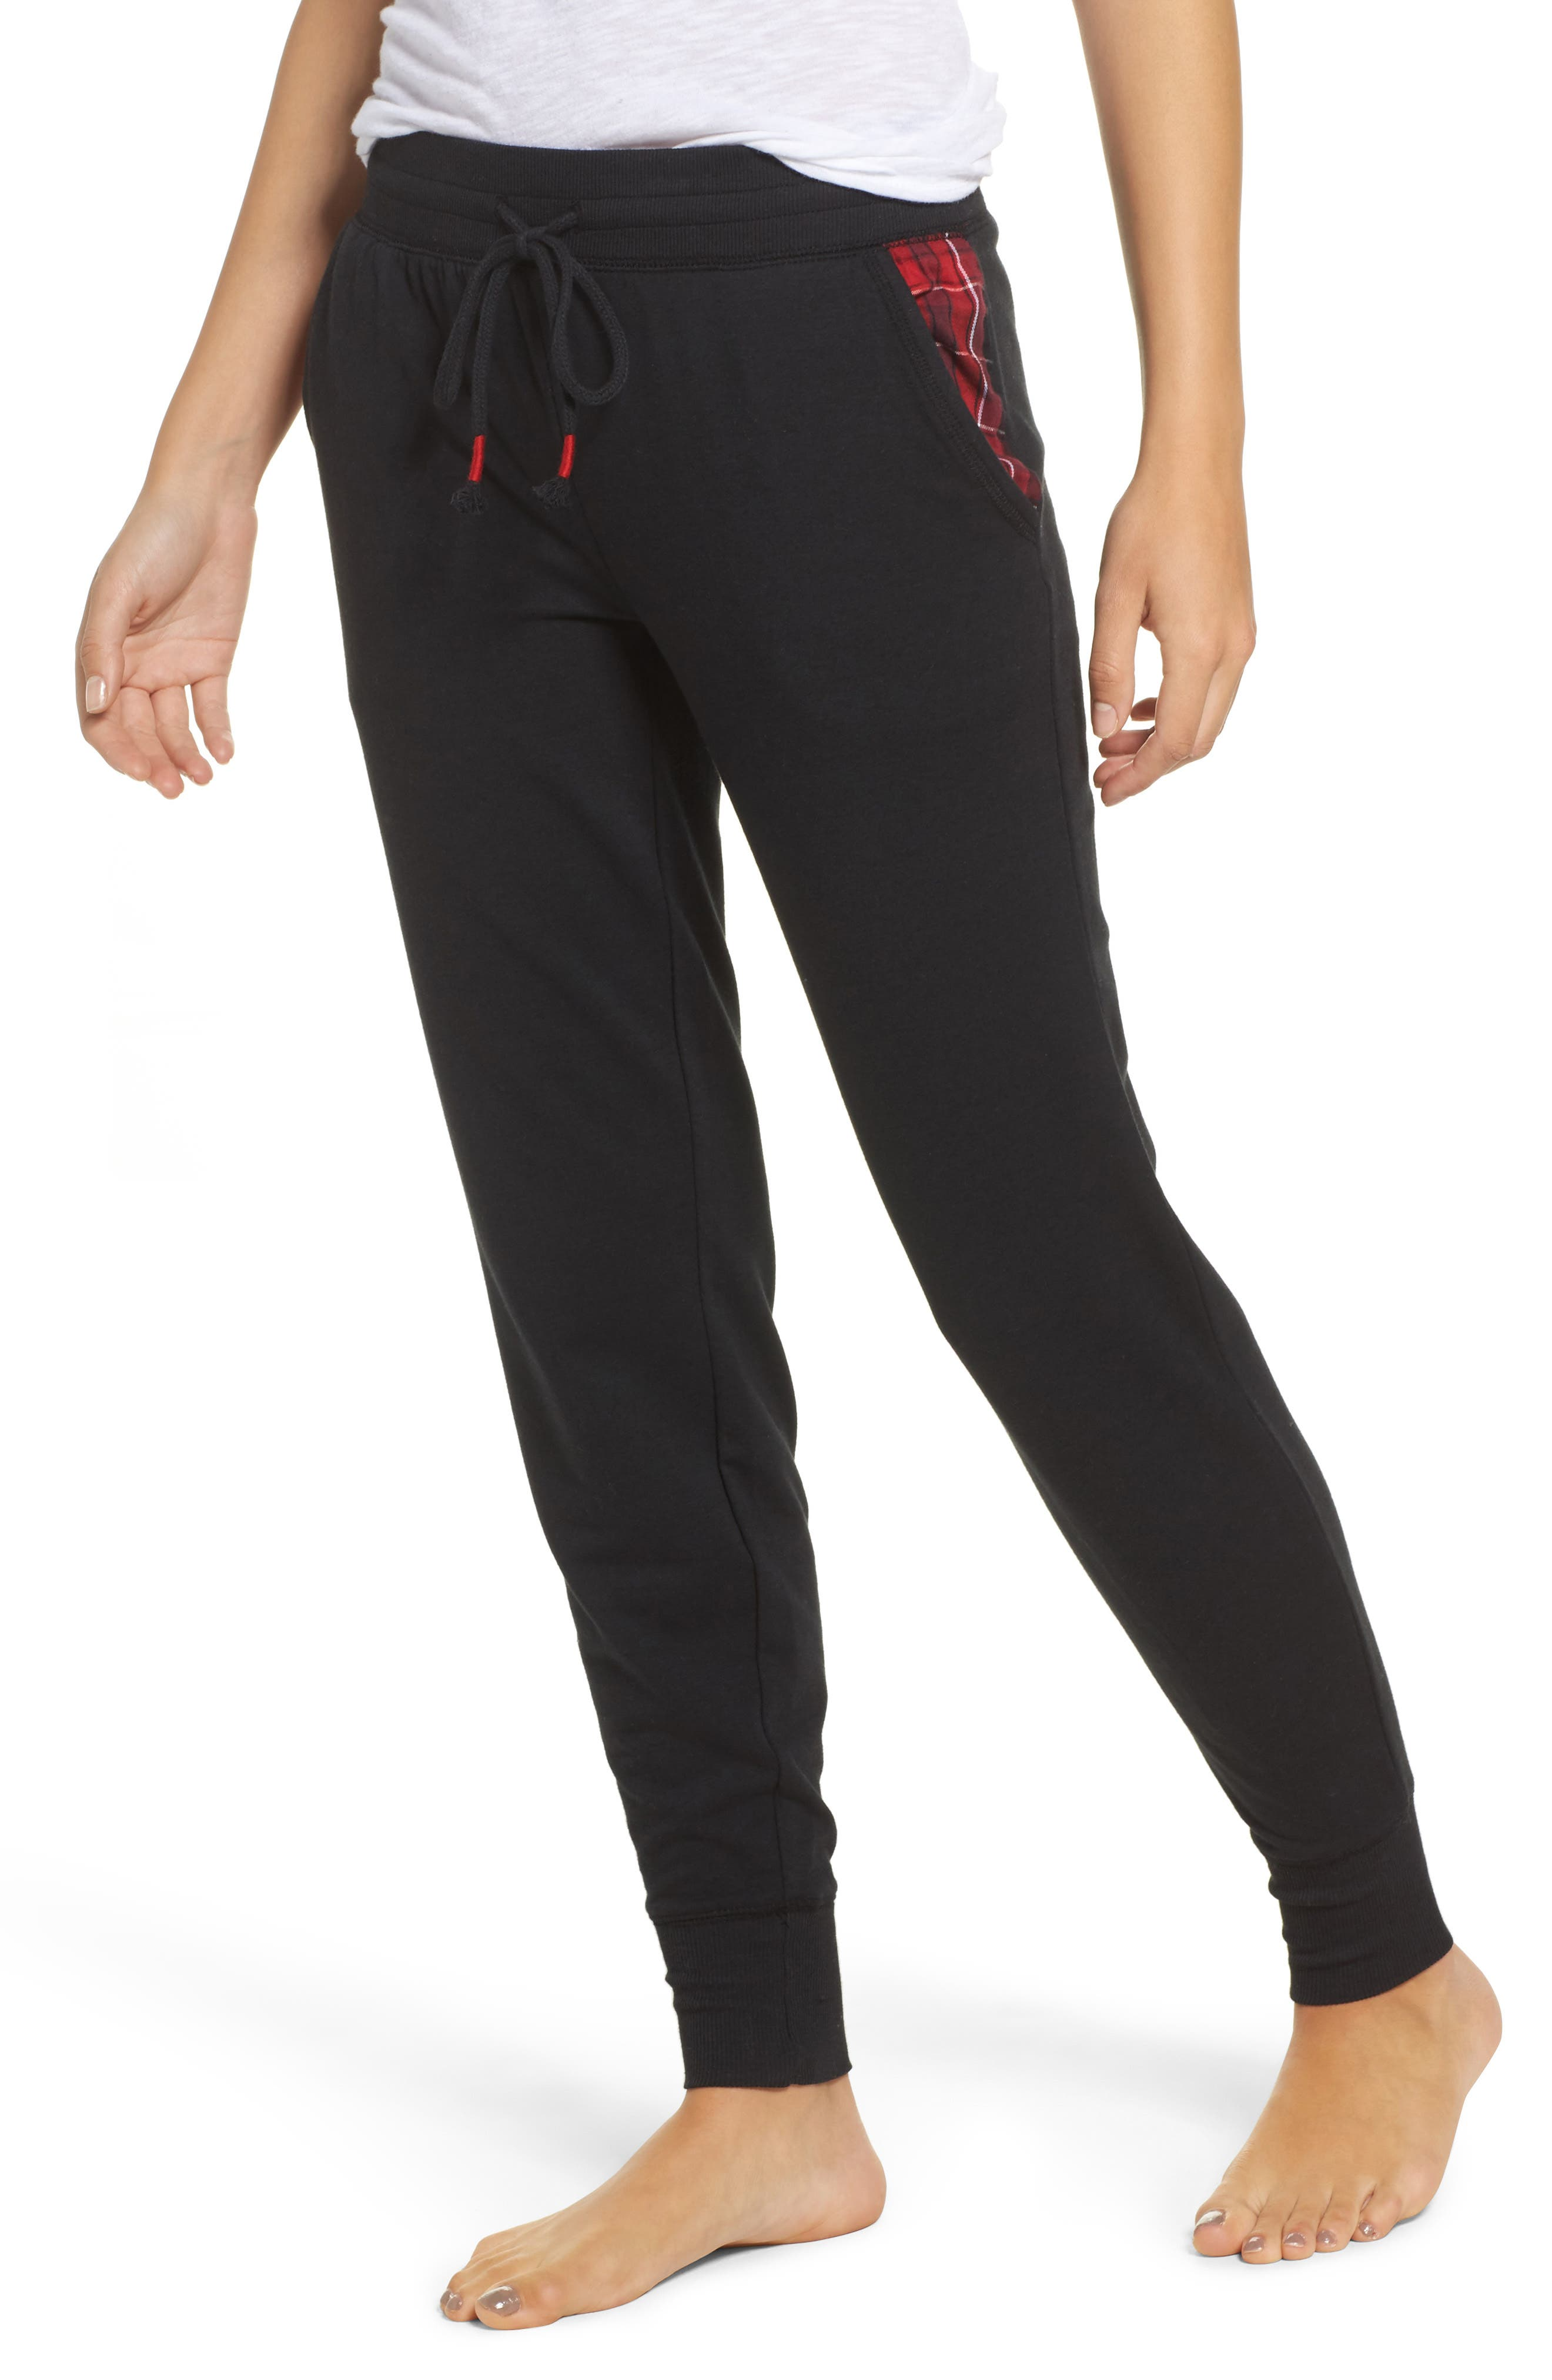 Lounge Jogger Pants,                             Main thumbnail 1, color,                             001